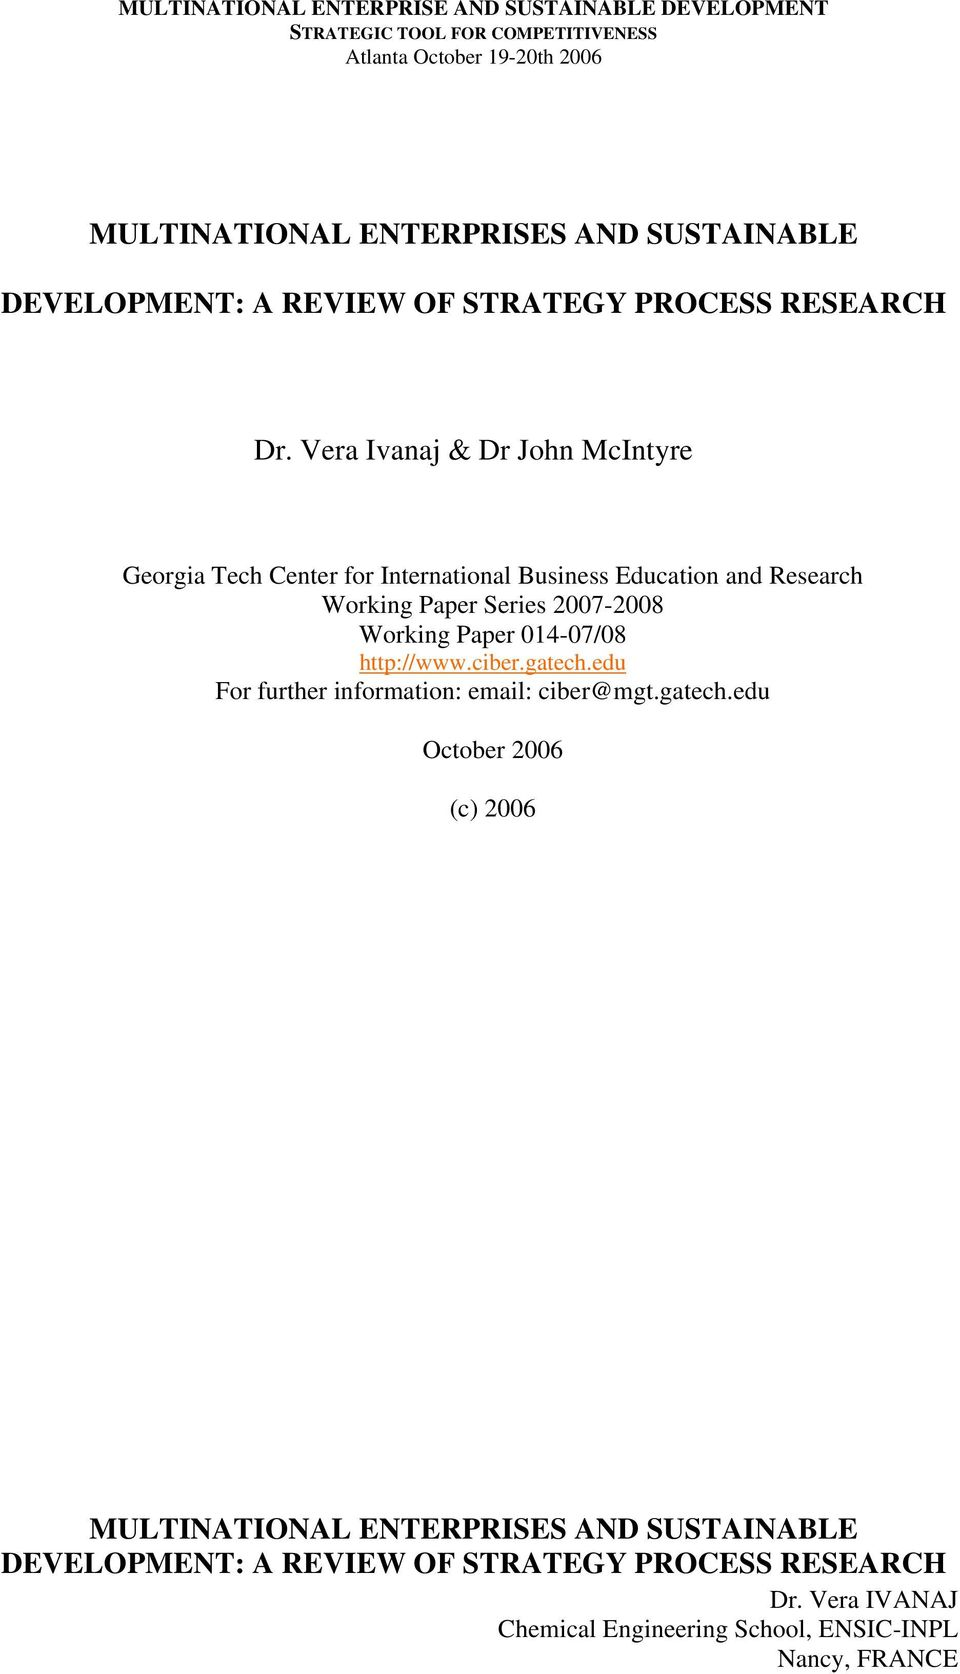 Vera Ivanaj & Dr John McIntyre Georgia Tech Center for International Business Education and Research Working Paper Series 2007-2008 Working Paper 014-07/08